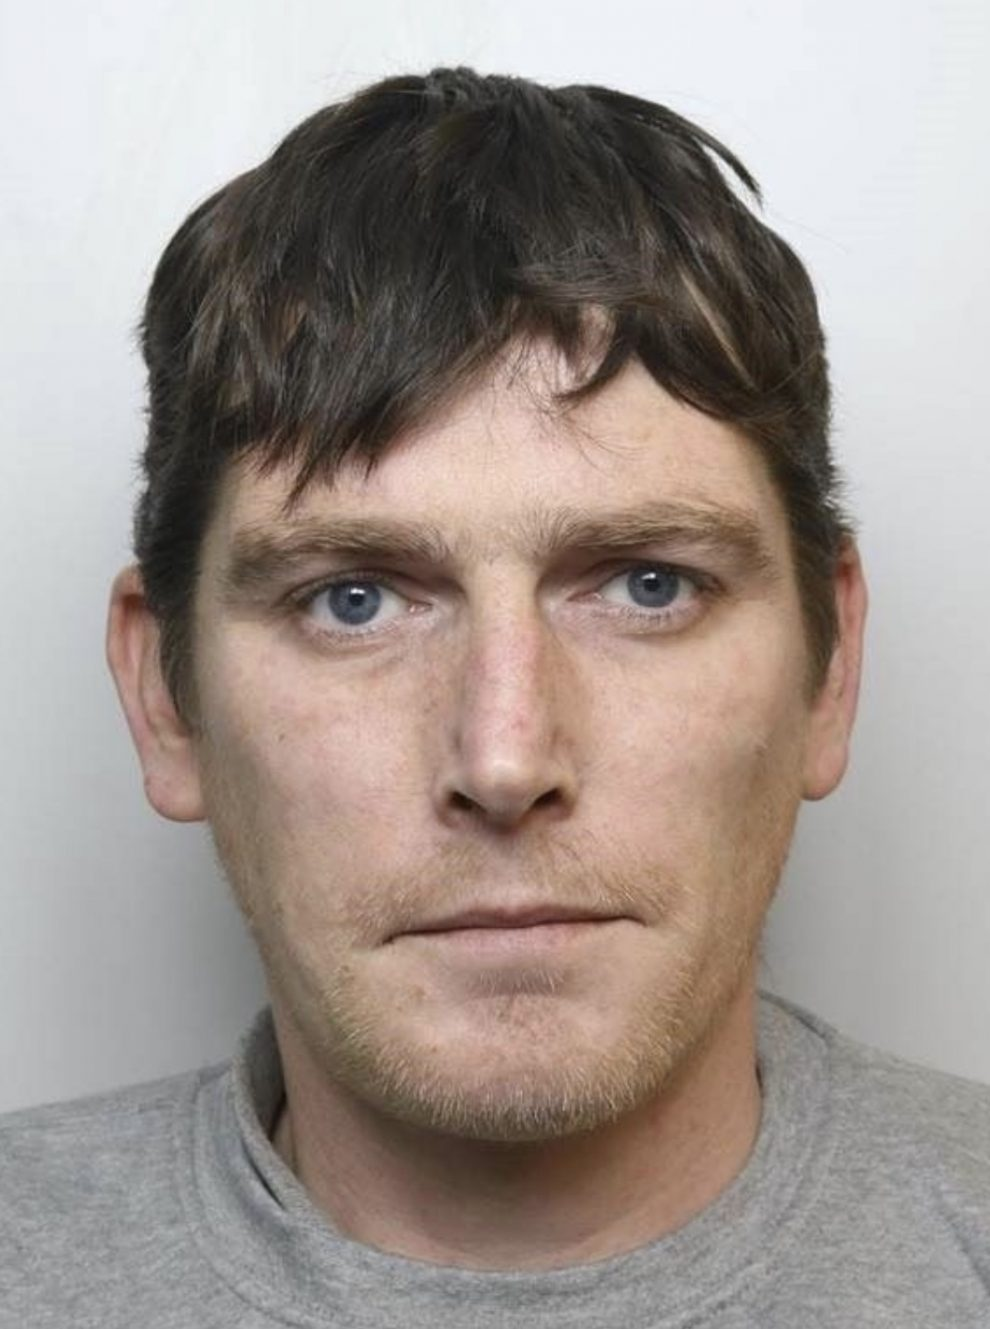 Police appealing for information regarding the whereabouts of a man who is missing from Salisbury, UKNIP